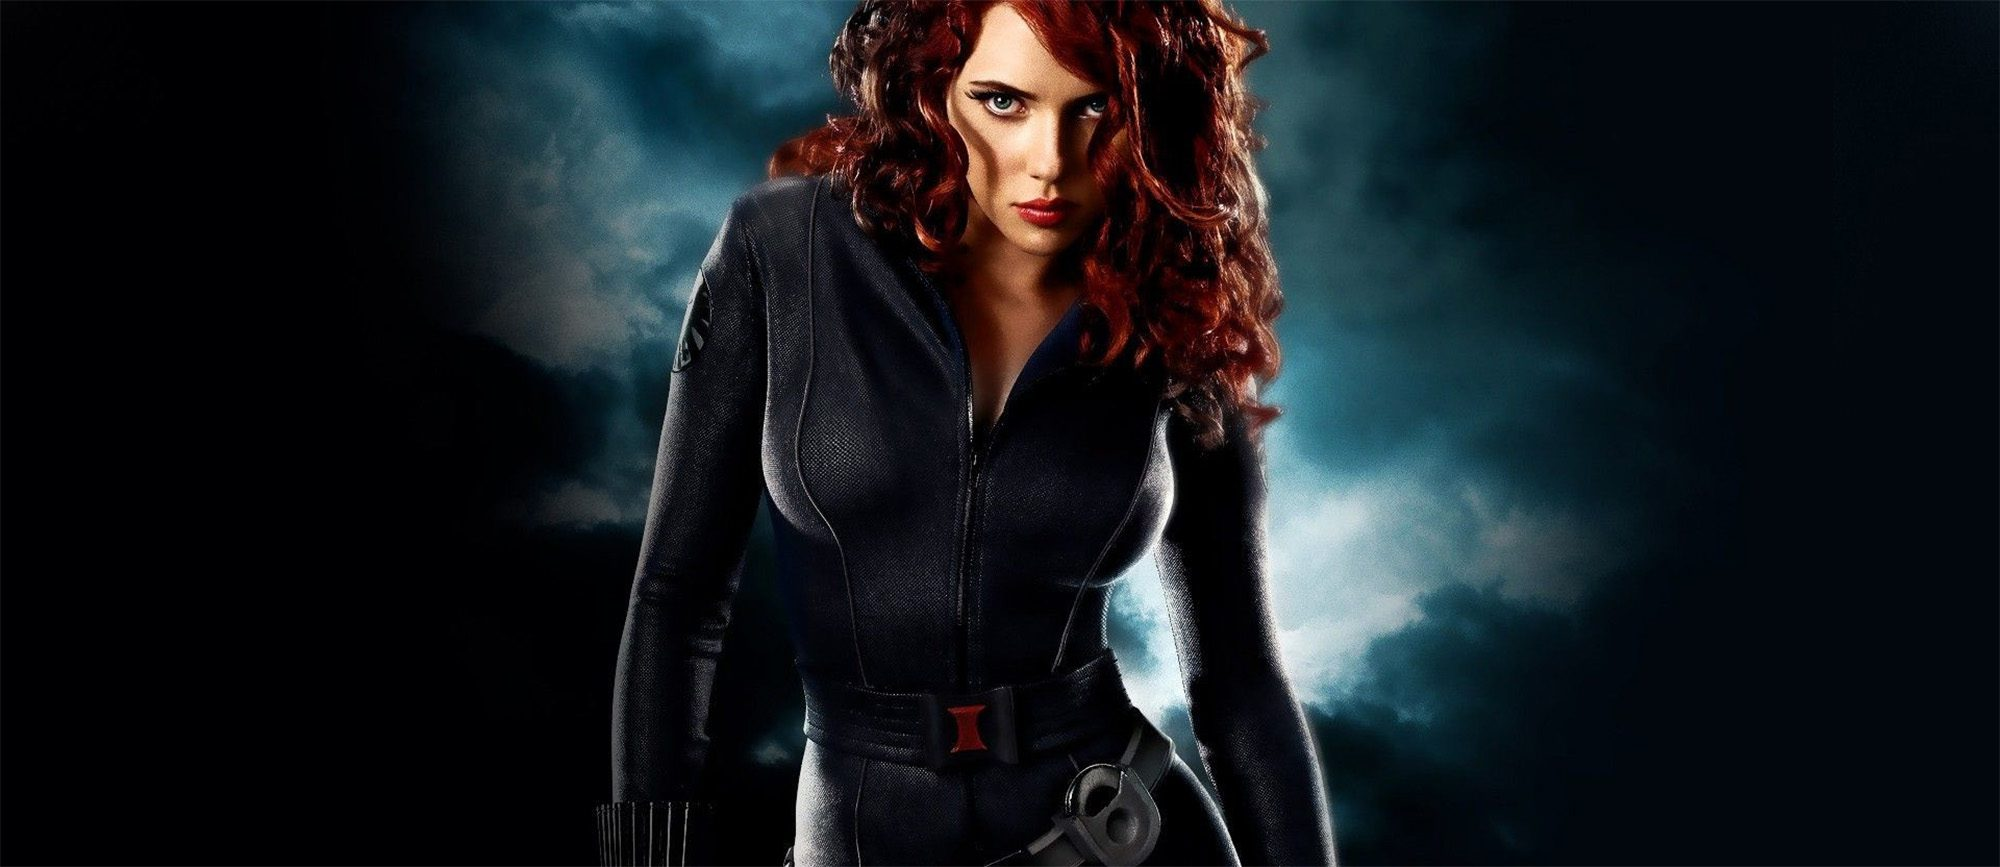 The female filmmakers we think should direct the 'Black Widow' movie